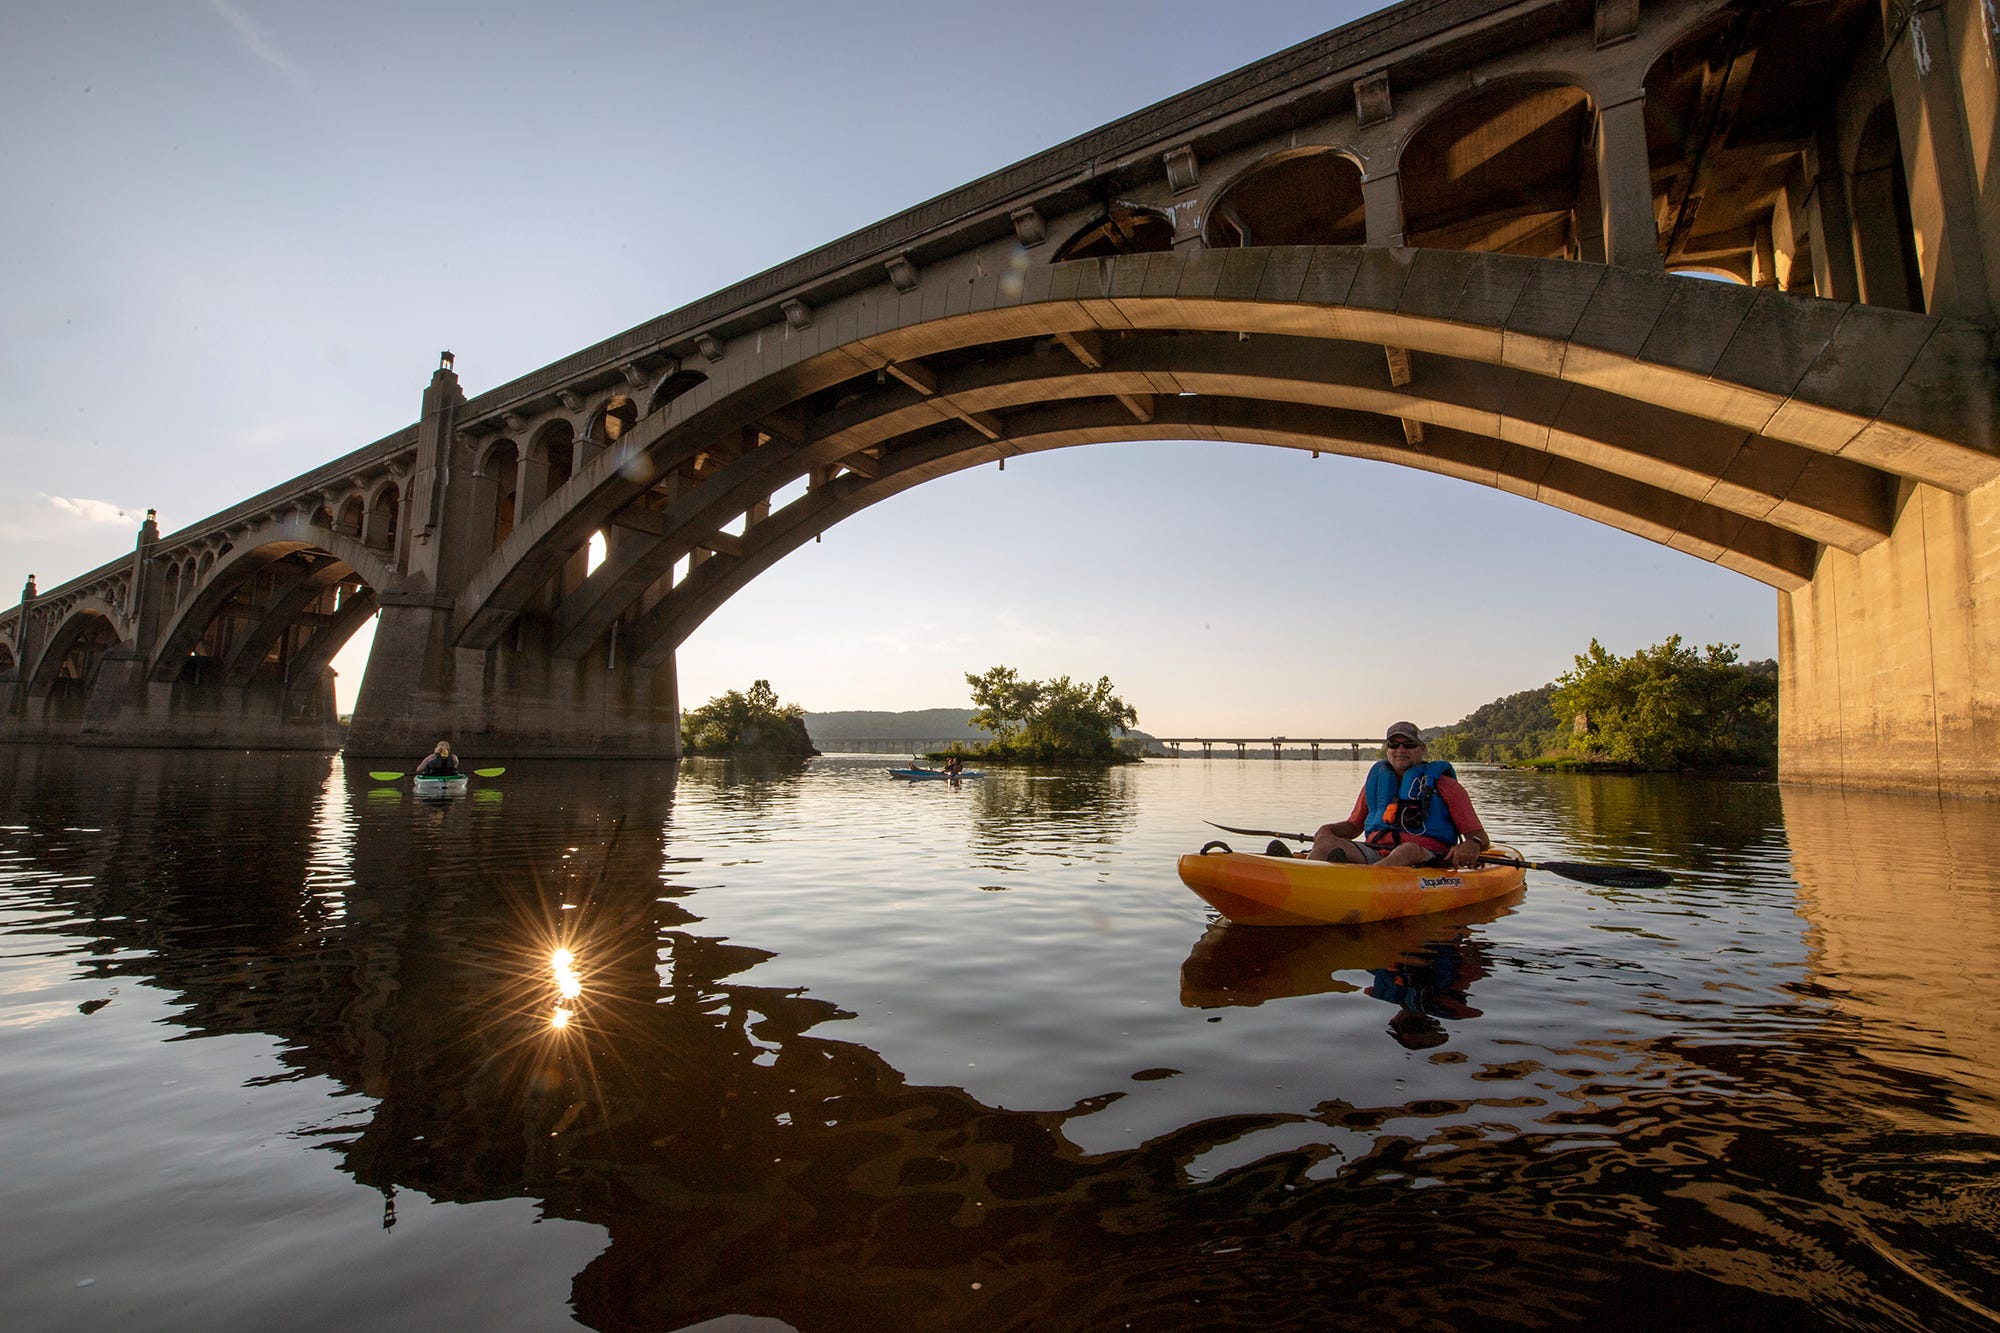 A paddler crosses under Veterans Memorial Bridge between Wrightsville and Columbia during a paddling tour organized by Shank's Mare Outfitters on August 8, 2020.